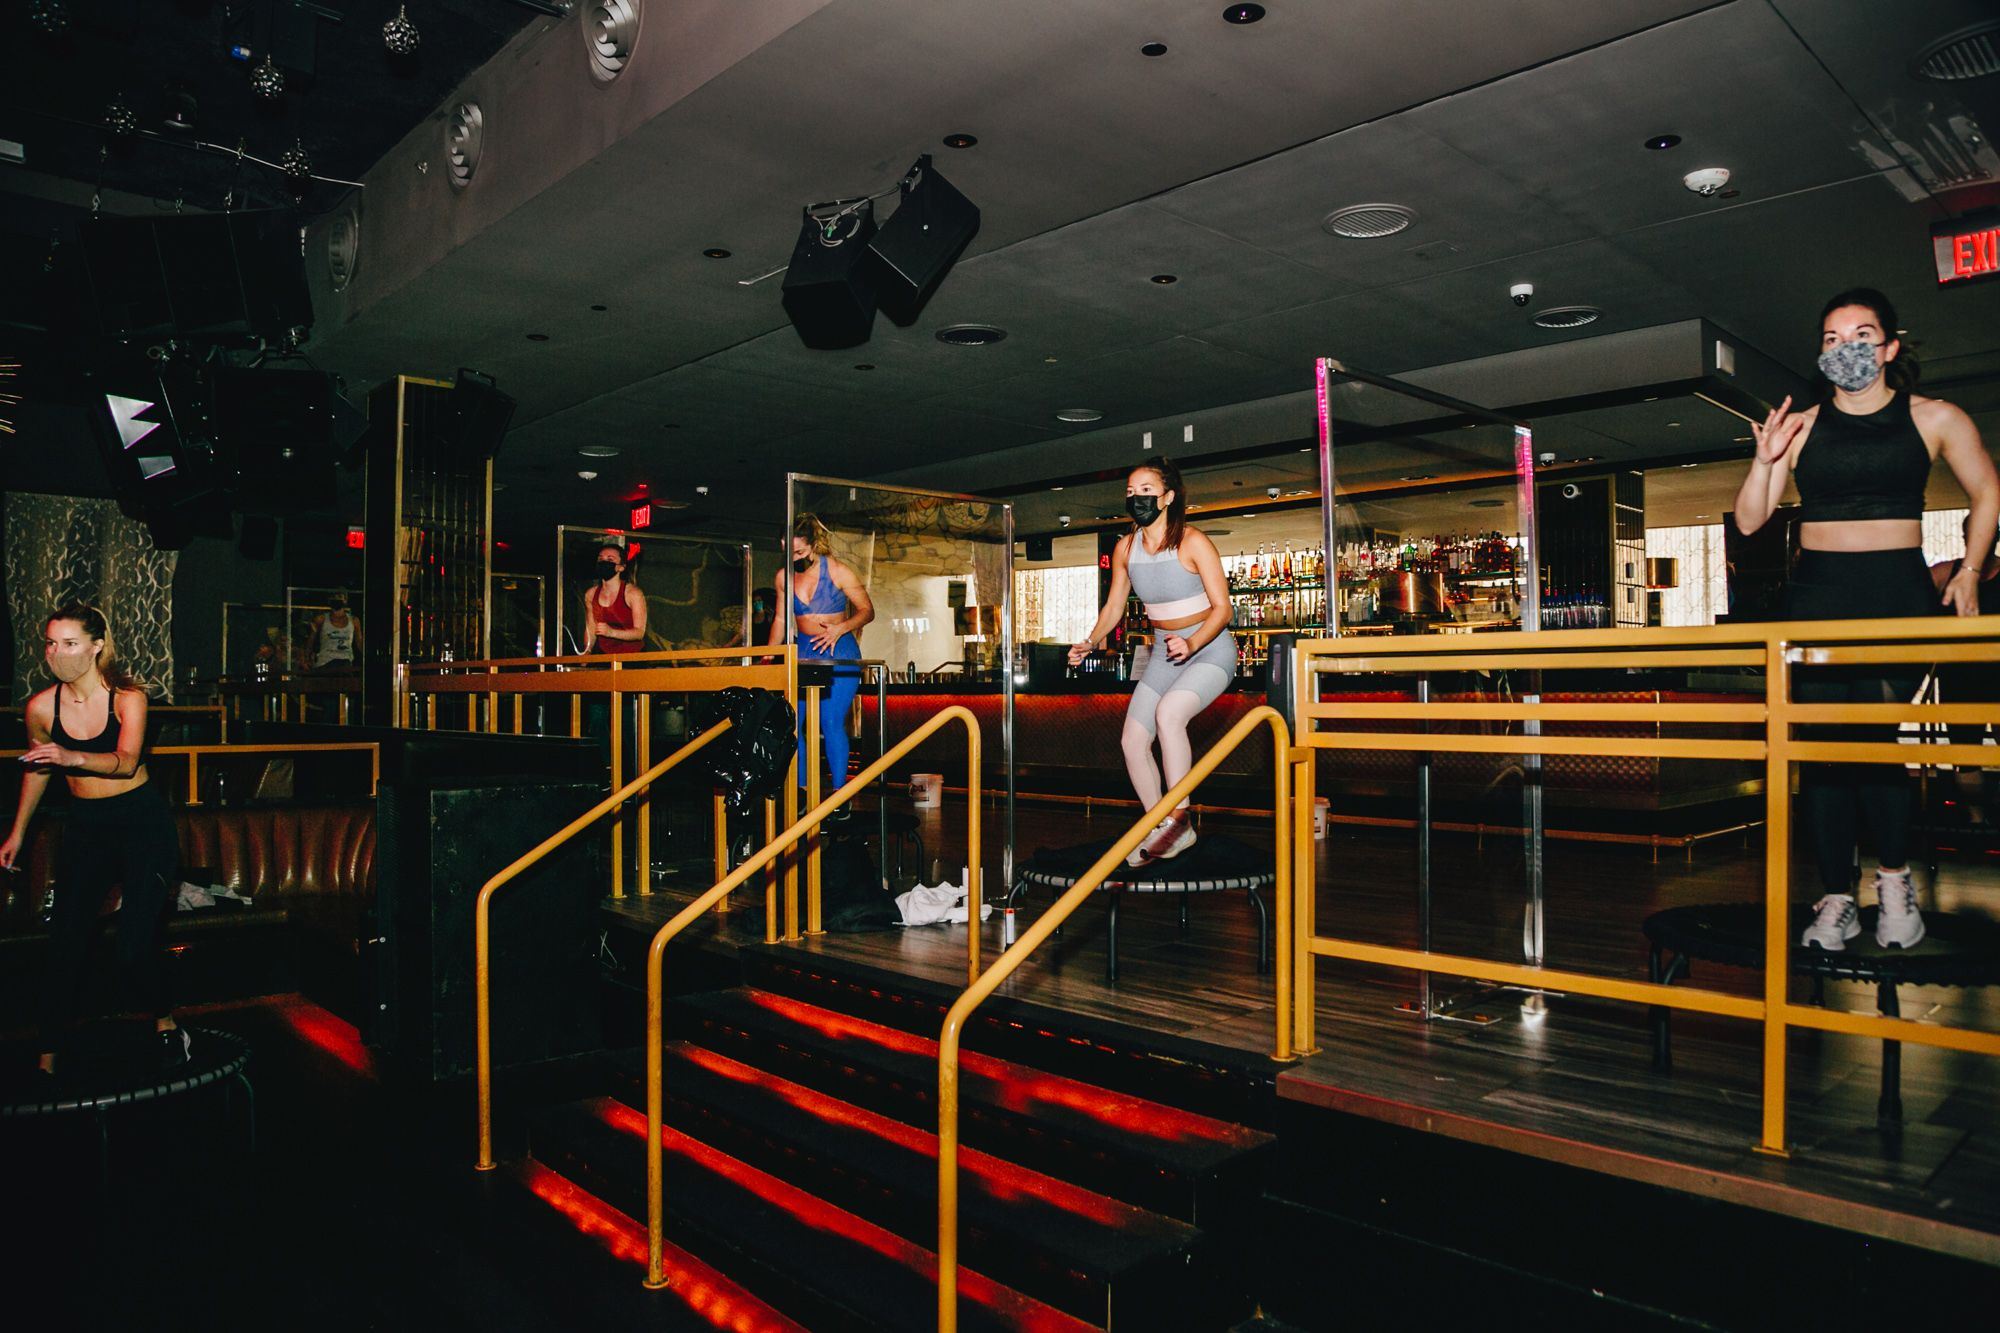 Participants in a Barre Groove class jump on trampolines in front of a bar at the Grand in the Seaport District, which remains closed as a nightclub.